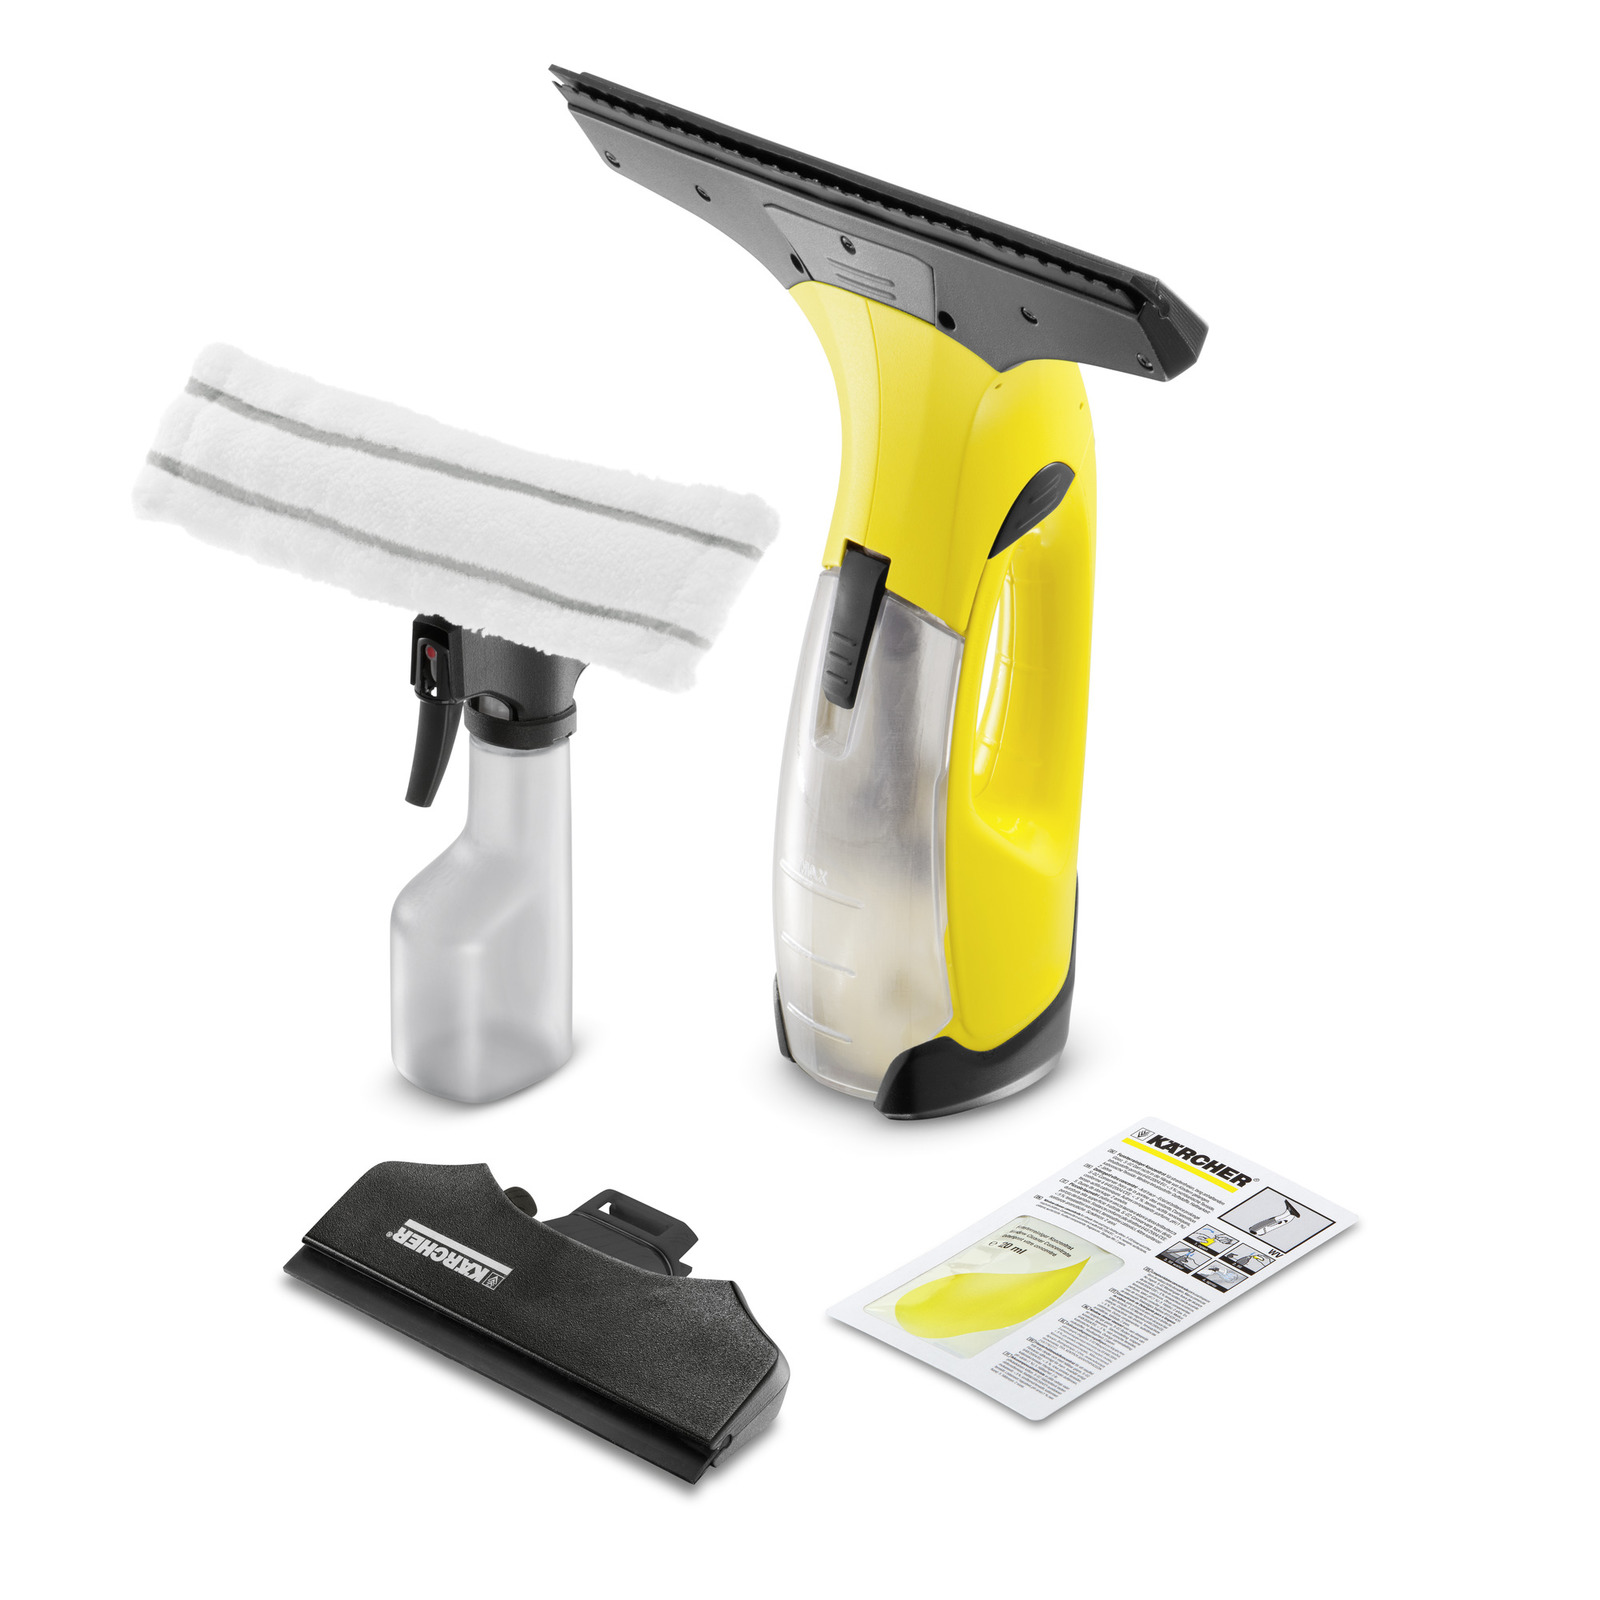 Interesting gadgets that at times simplify window cleaning